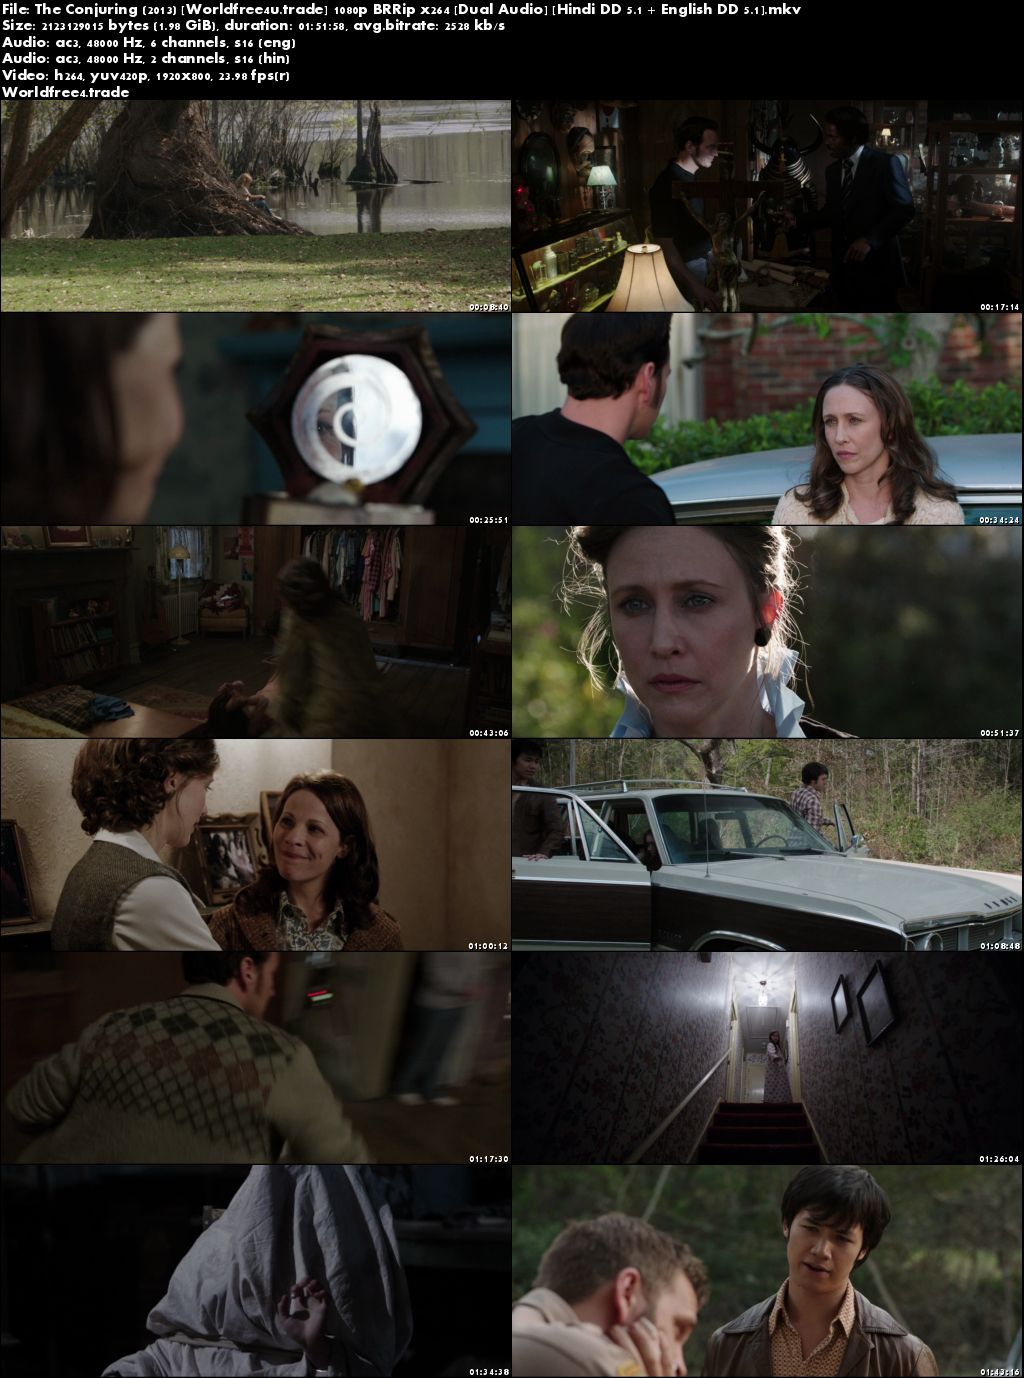 Screen Shoot of The Conjuring 2013 BRRip 1080p Dual Audio In Hindi English